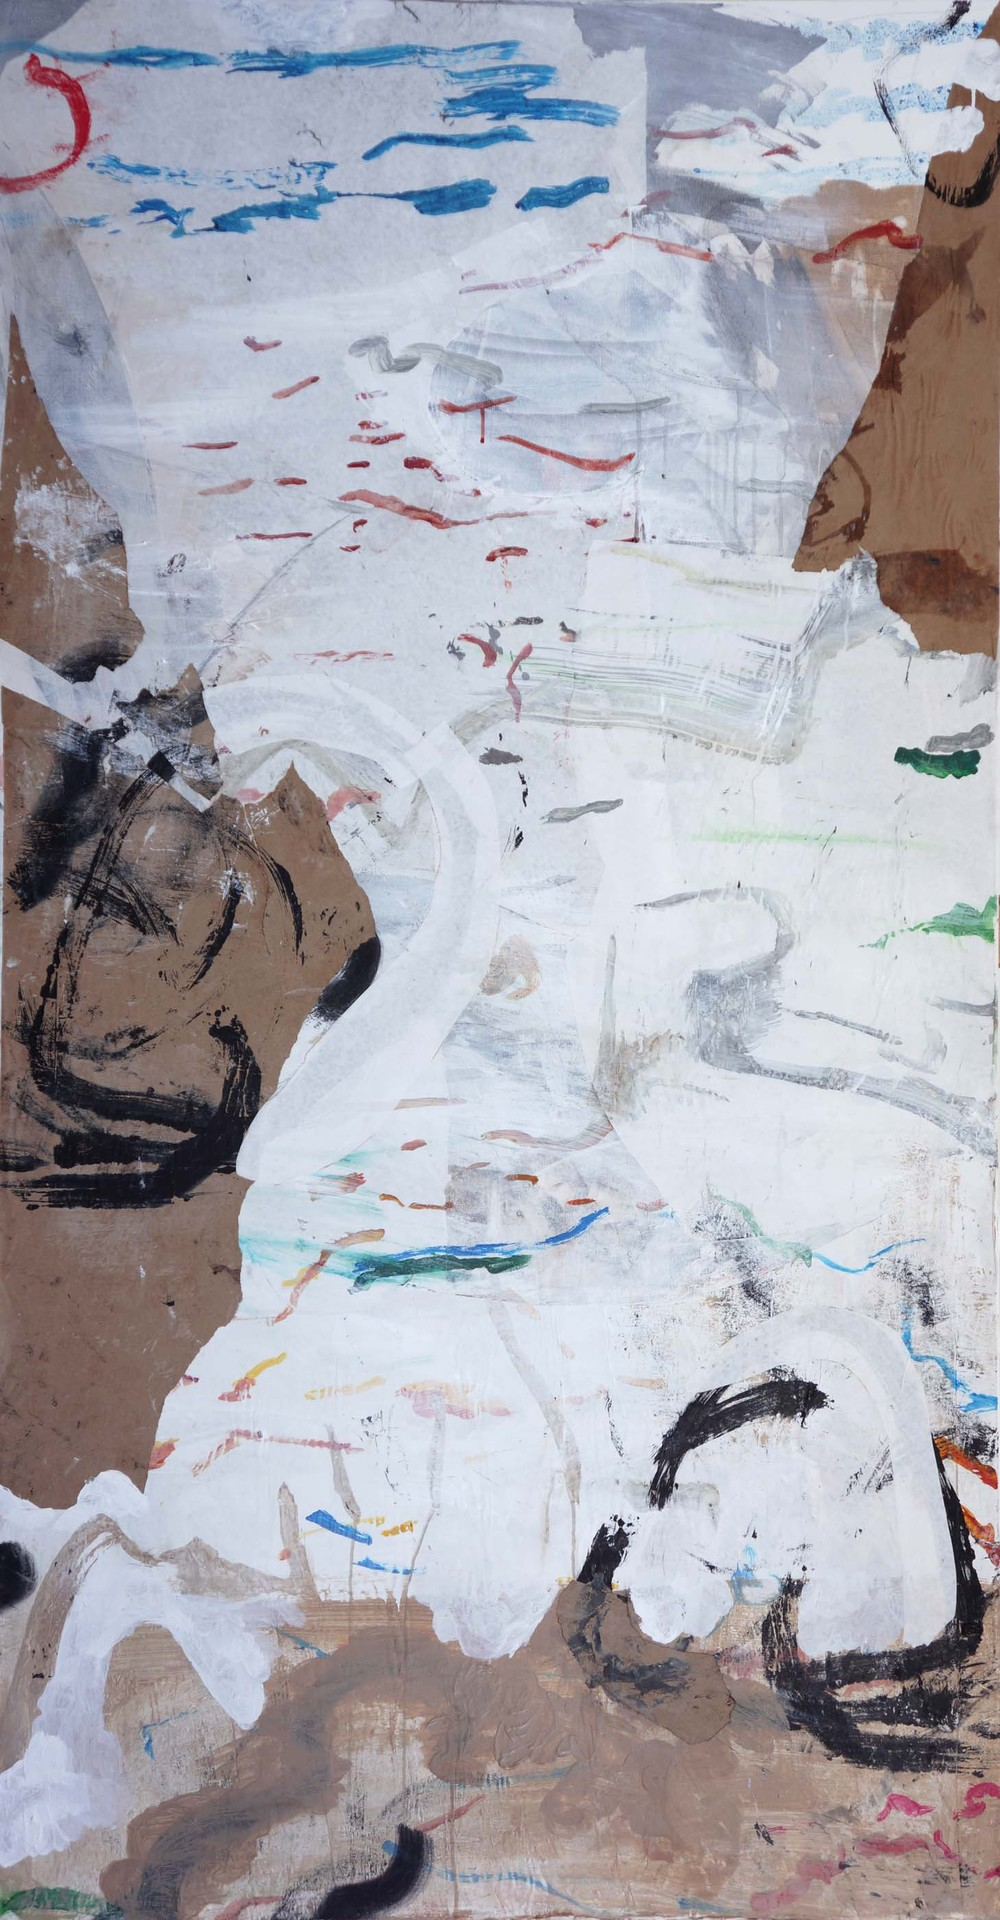 "emptier   1/4/13  72x38"" acrylic & collaged paper on canvas"